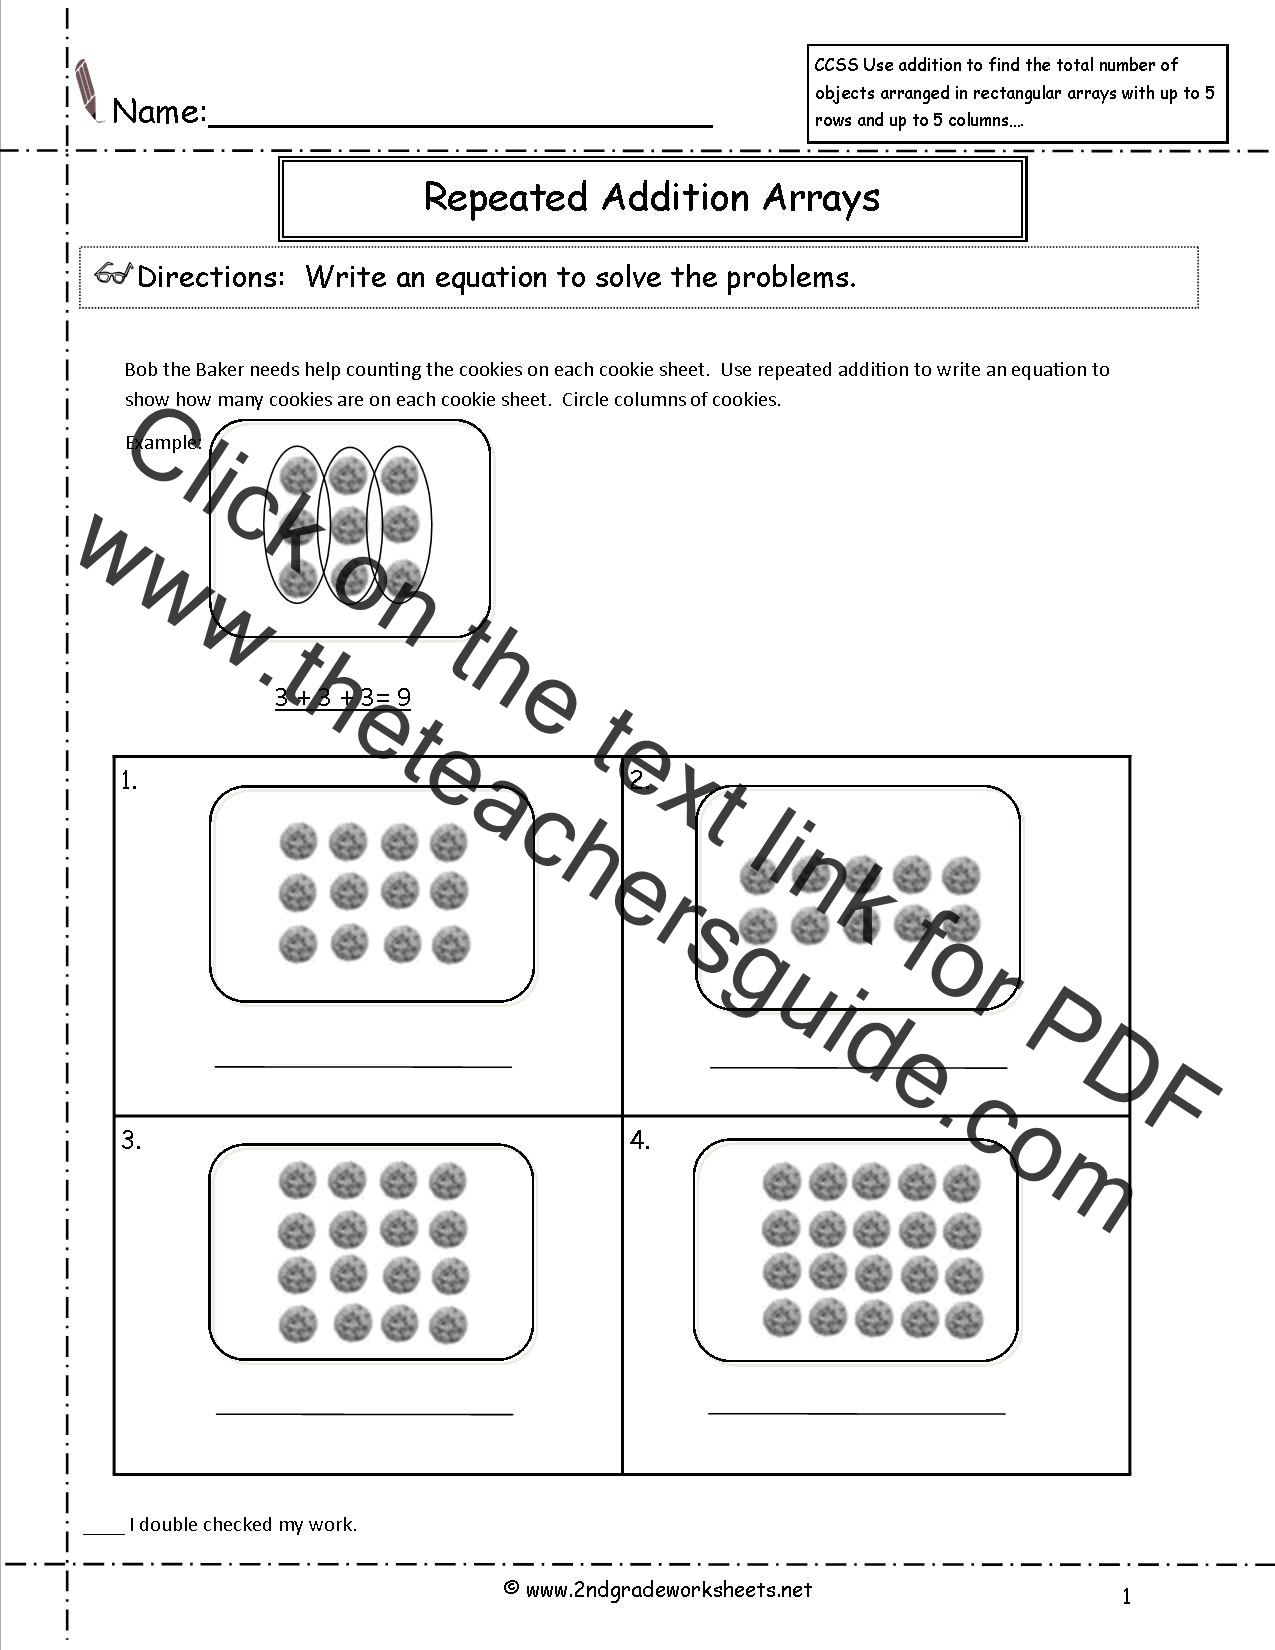 Worksheets Repeated Addition Worksheets ccss 2 oa 4 worksheets repeated addition arrays worksheets